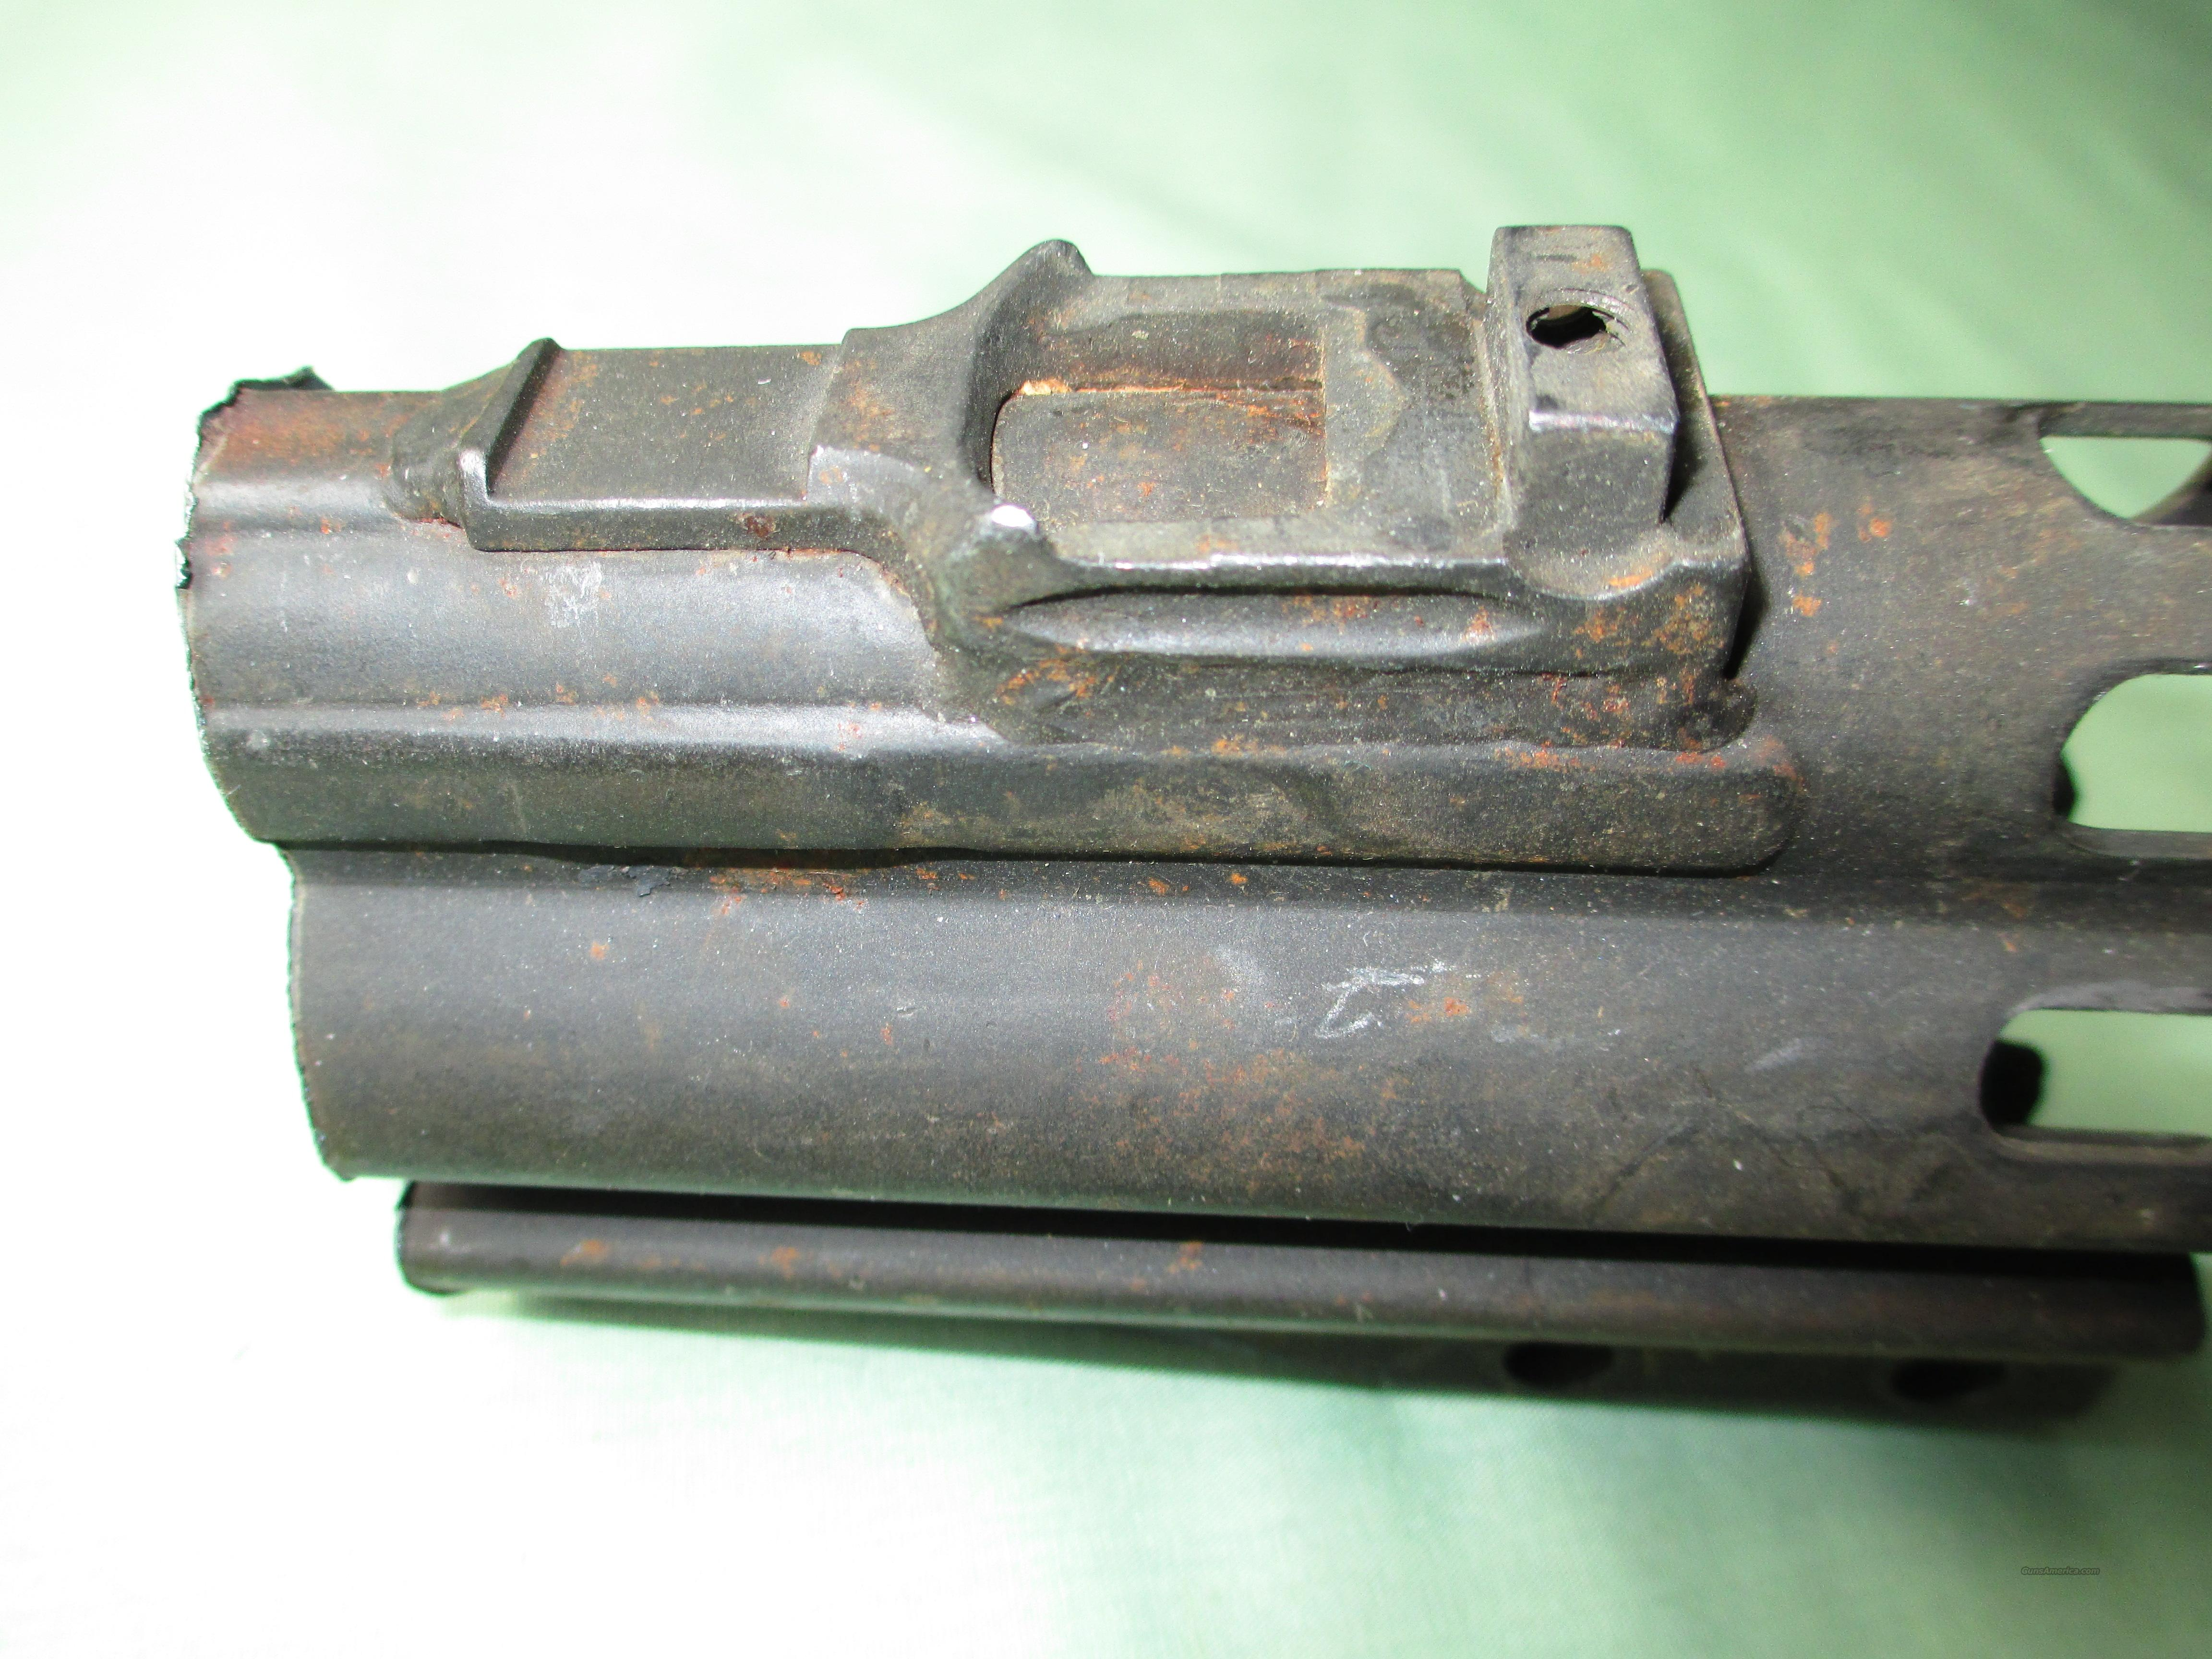 HK91/G3 Rear Sight Base (part that welds to the receiver)  Non-Guns > Gun Parts > Military - Foreign